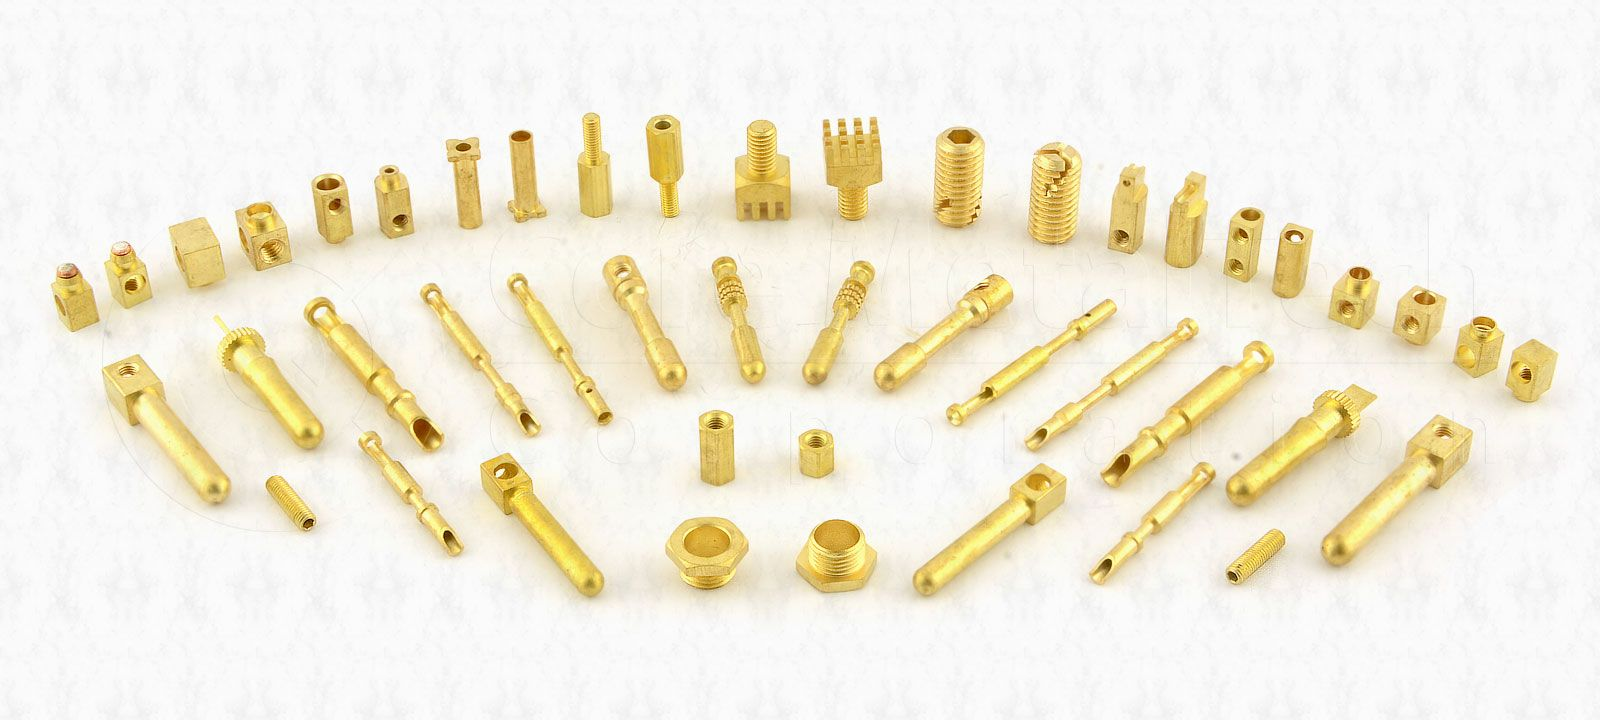 We Are Manufacturers Exporters Of Brass Parts Turned Brass Components And Custom Metal Components As Per Buyer S Specification D Custom Metal Metal Brass